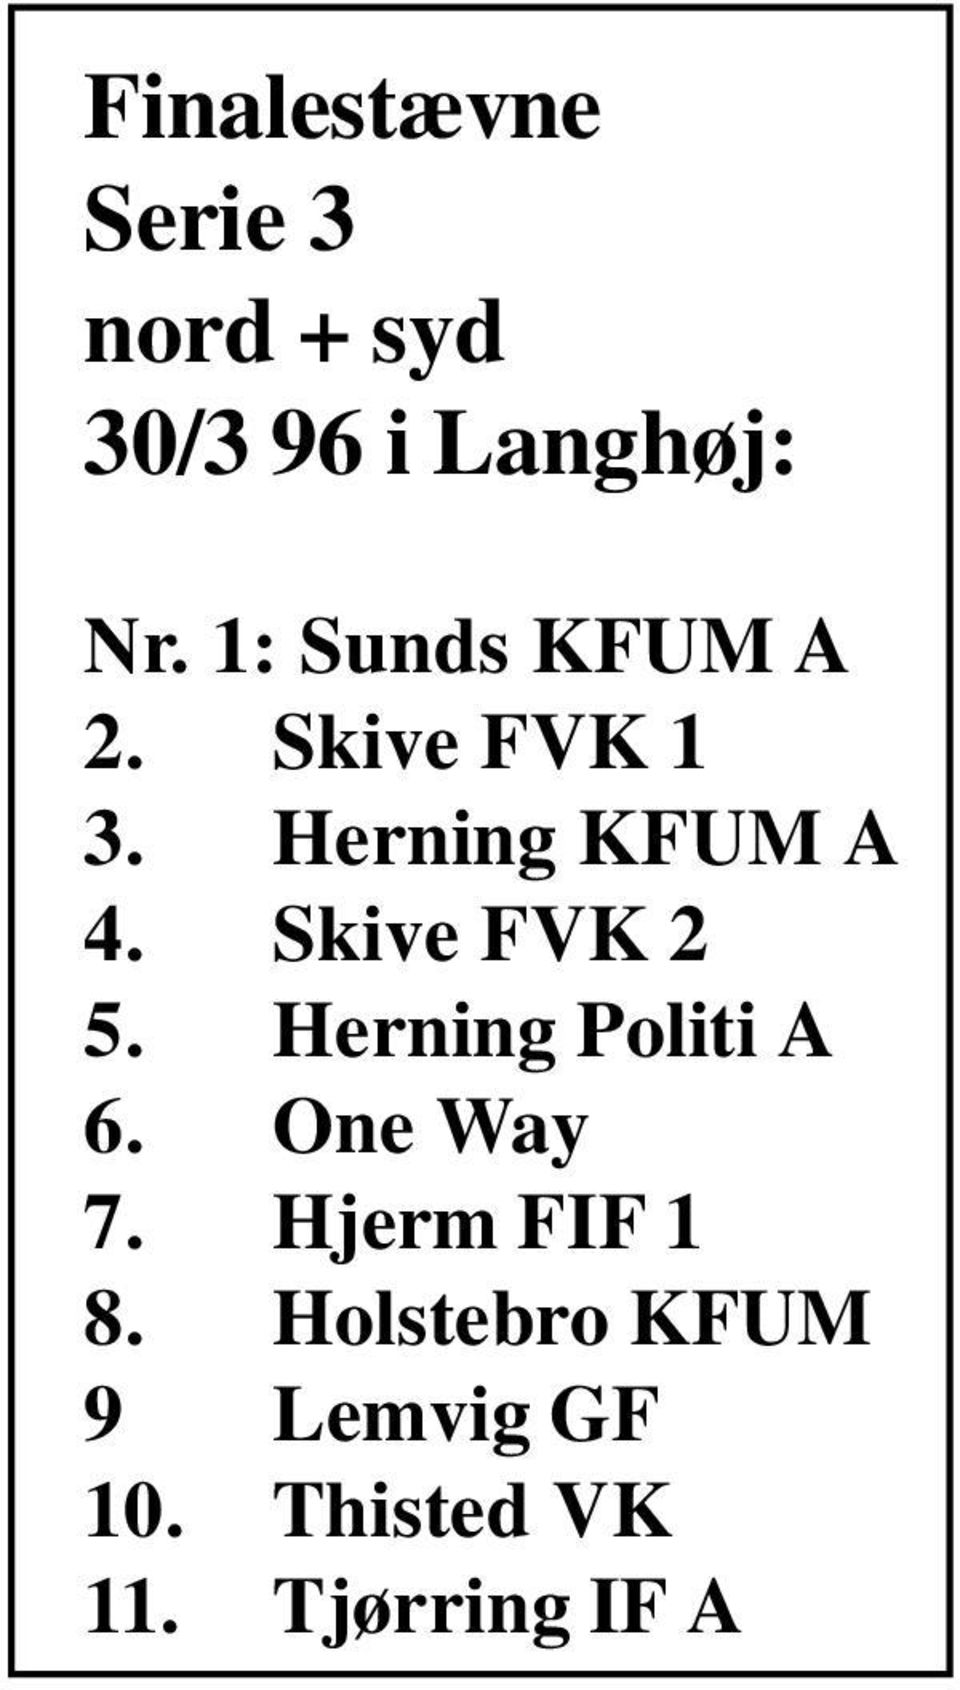 Skive FVK 2 5. Herning Politi A 6. One Way 7.